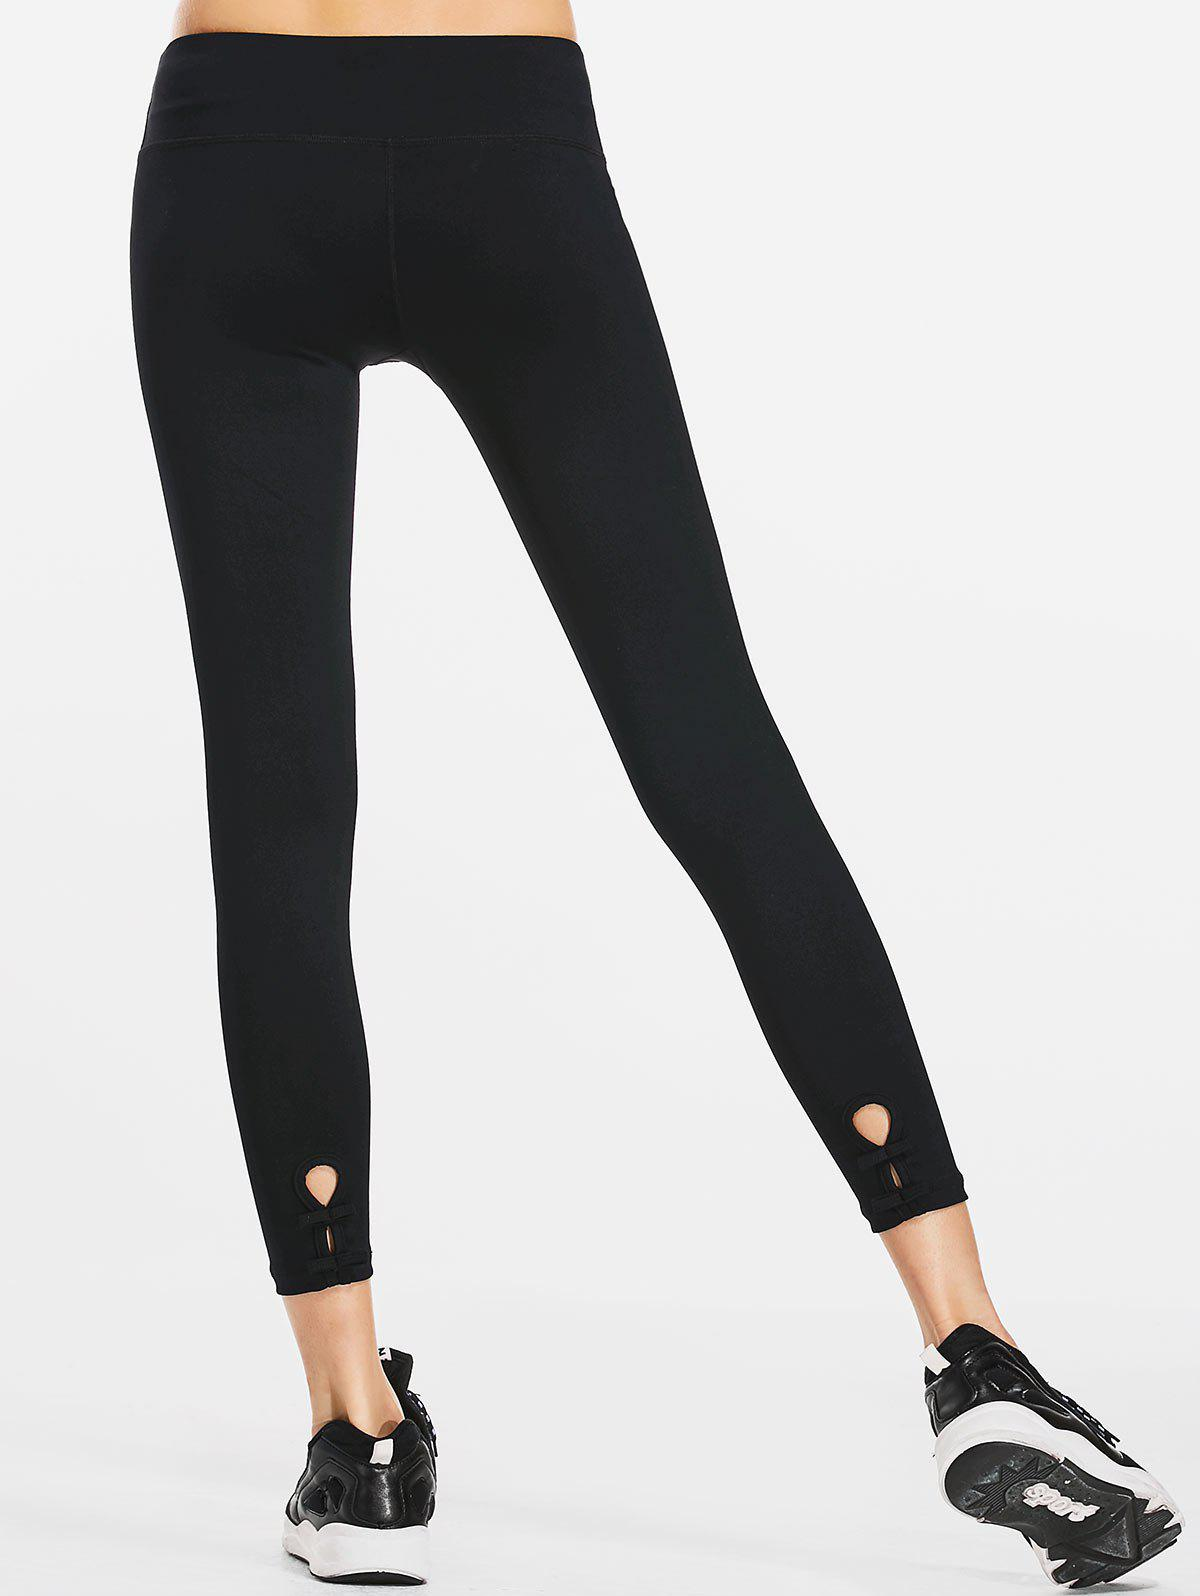 Cut Out Bowknot High Waisted Sporty Leggings 215363603